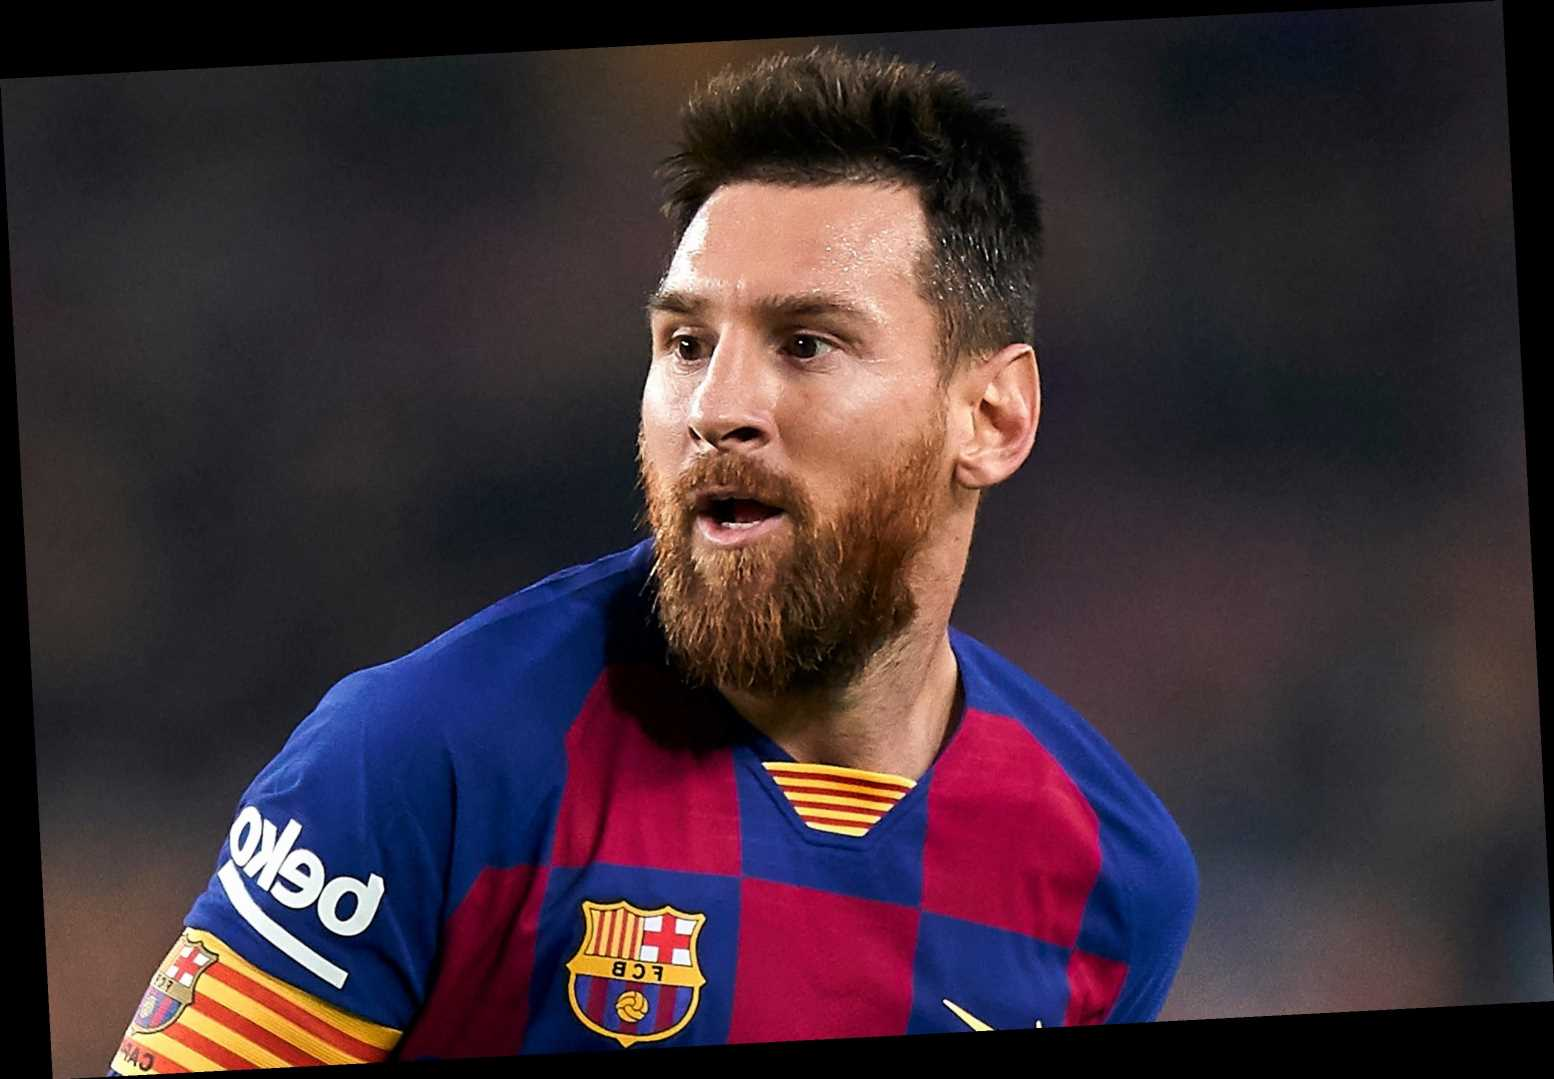 Barcelona cannot afford Lionel Messi without selling players after LaLiga salary cap, claims Spanish football expert